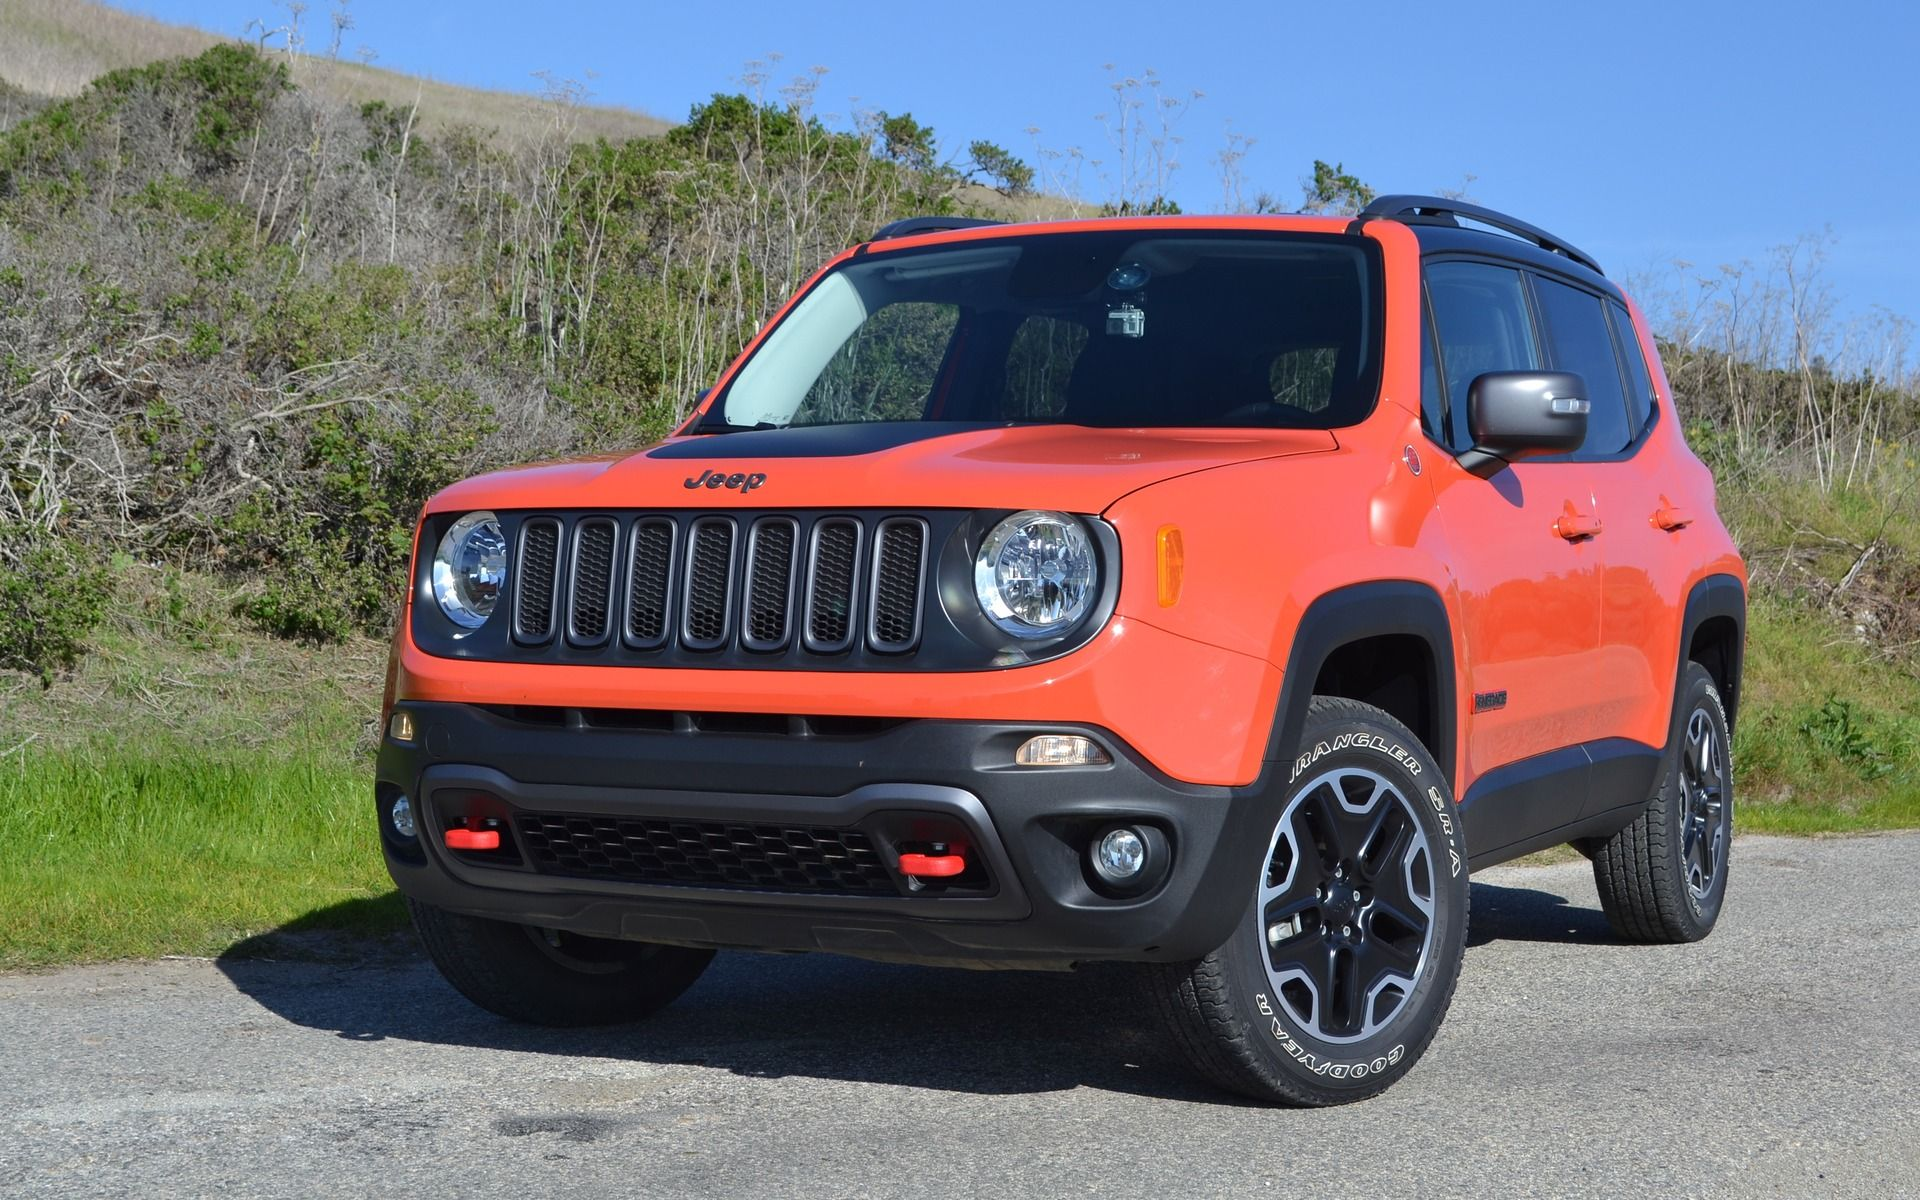 94 Used Cars Trucks Suvs In Stock In Middletown Jeep Renegade